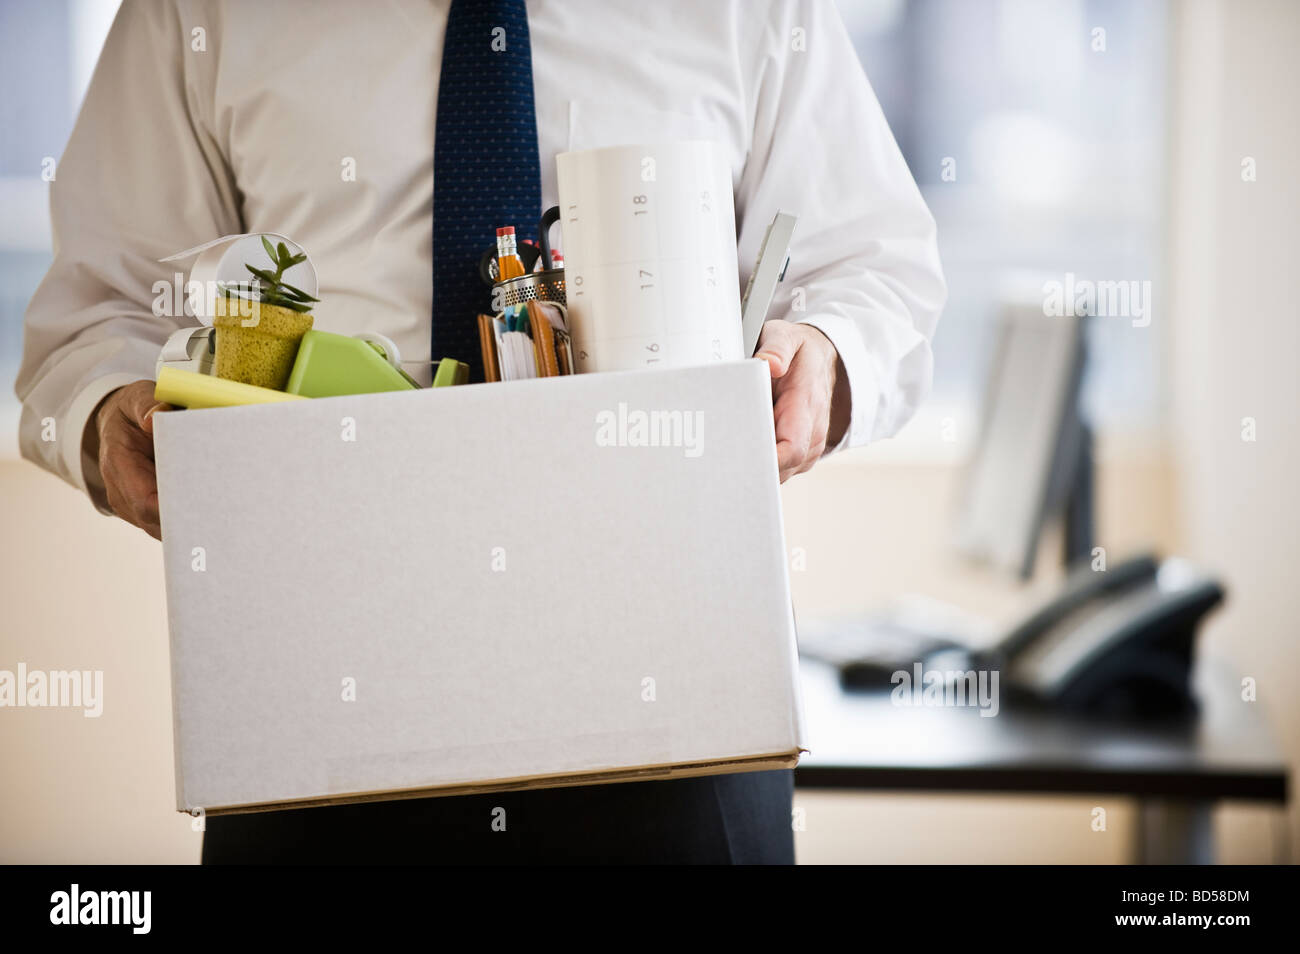 A businessman with a box full of desk stuff - Stock Image